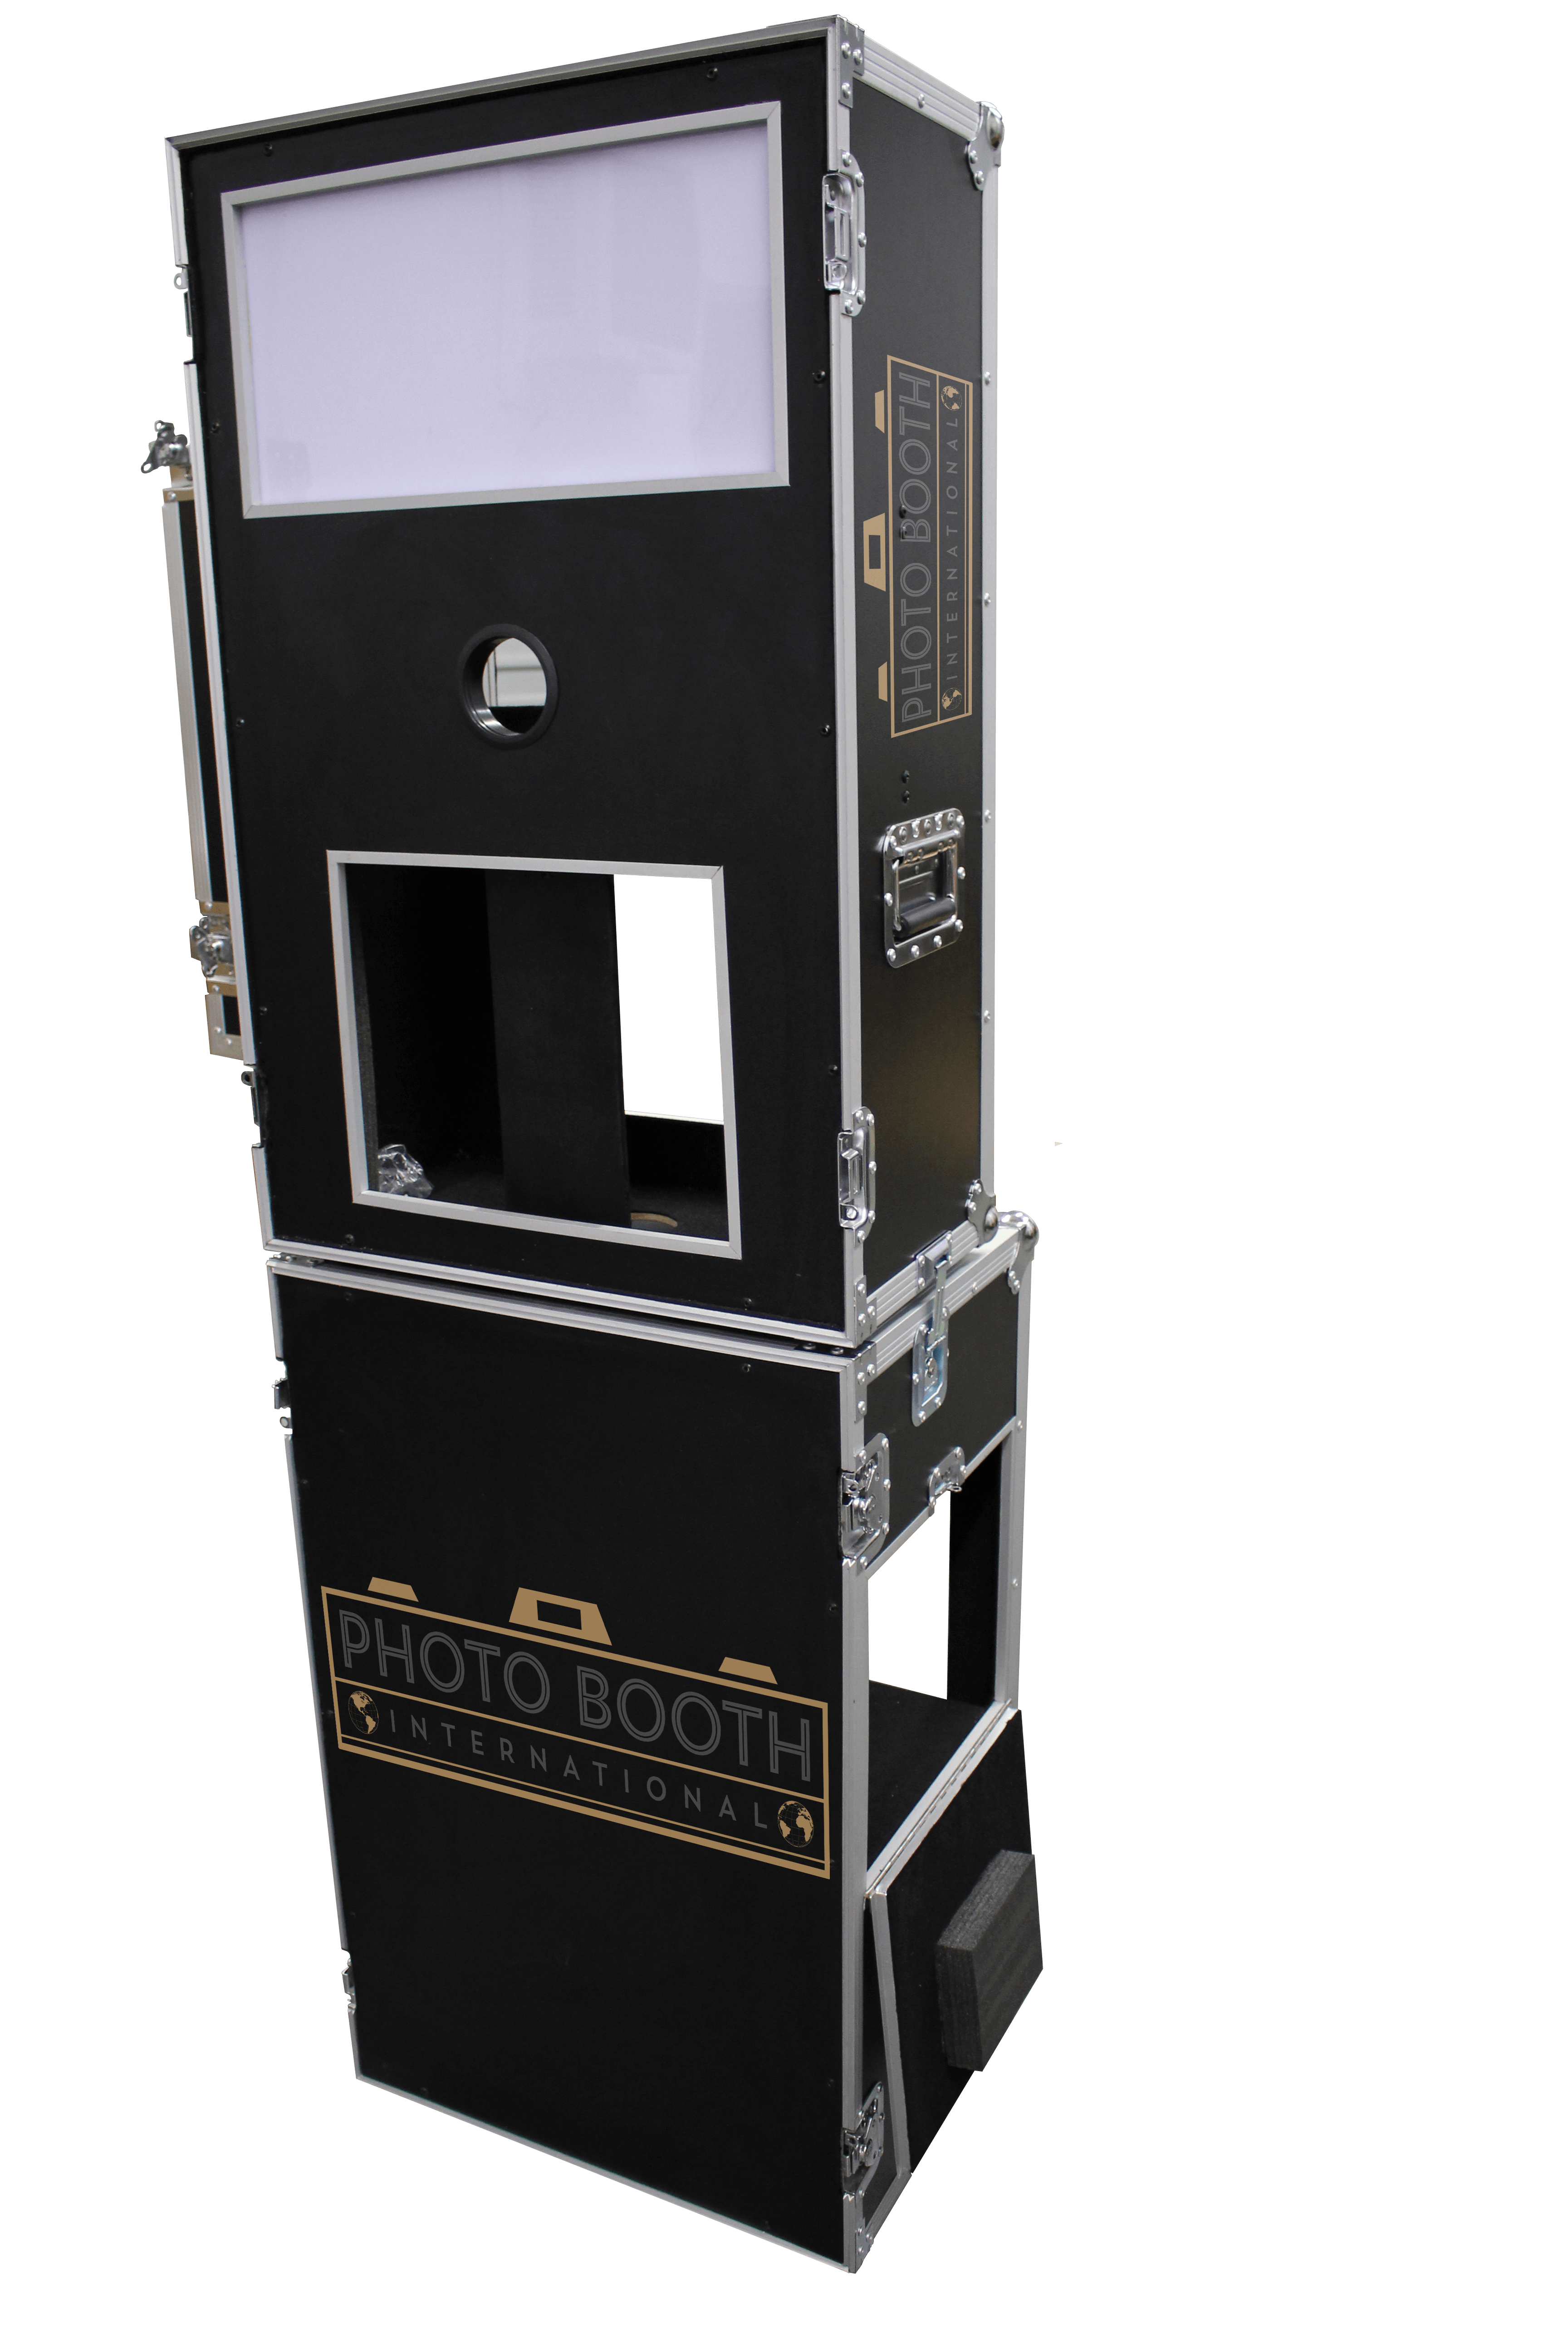 Black photo booth road case shell